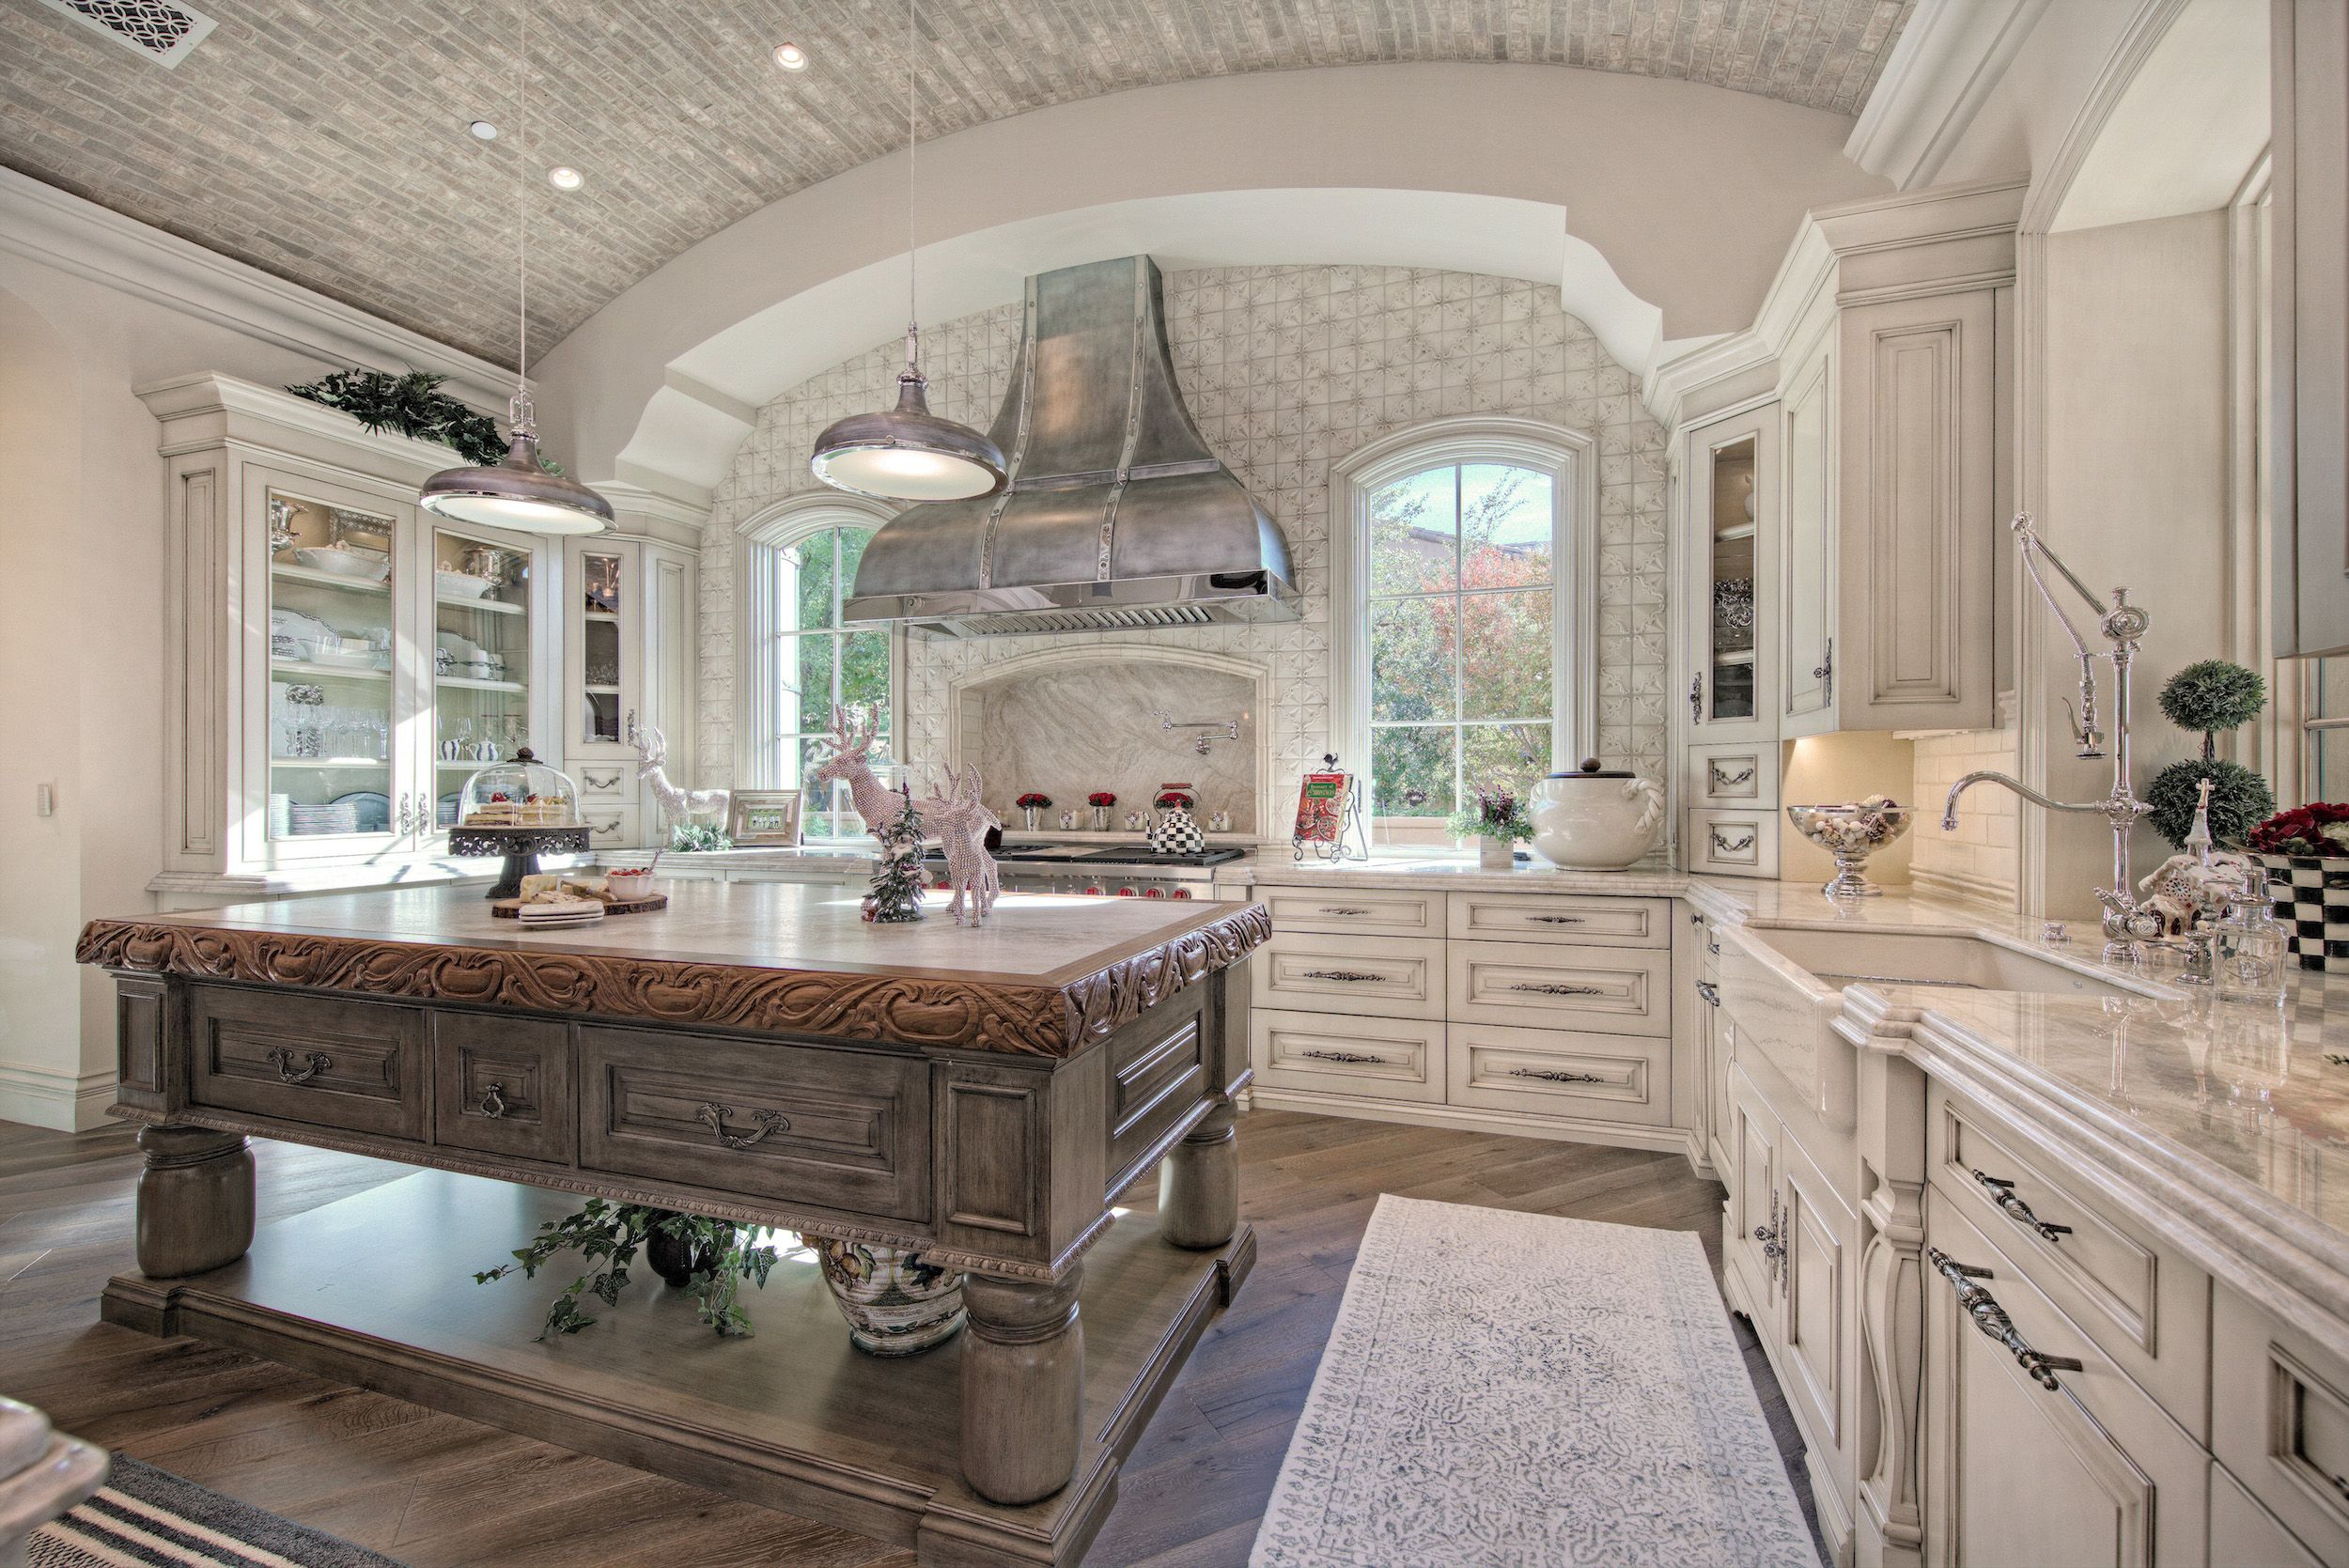 luxury french villa custom home kitchen wood floors white interior luxury home decor french on kitchen remodel french country id=96954